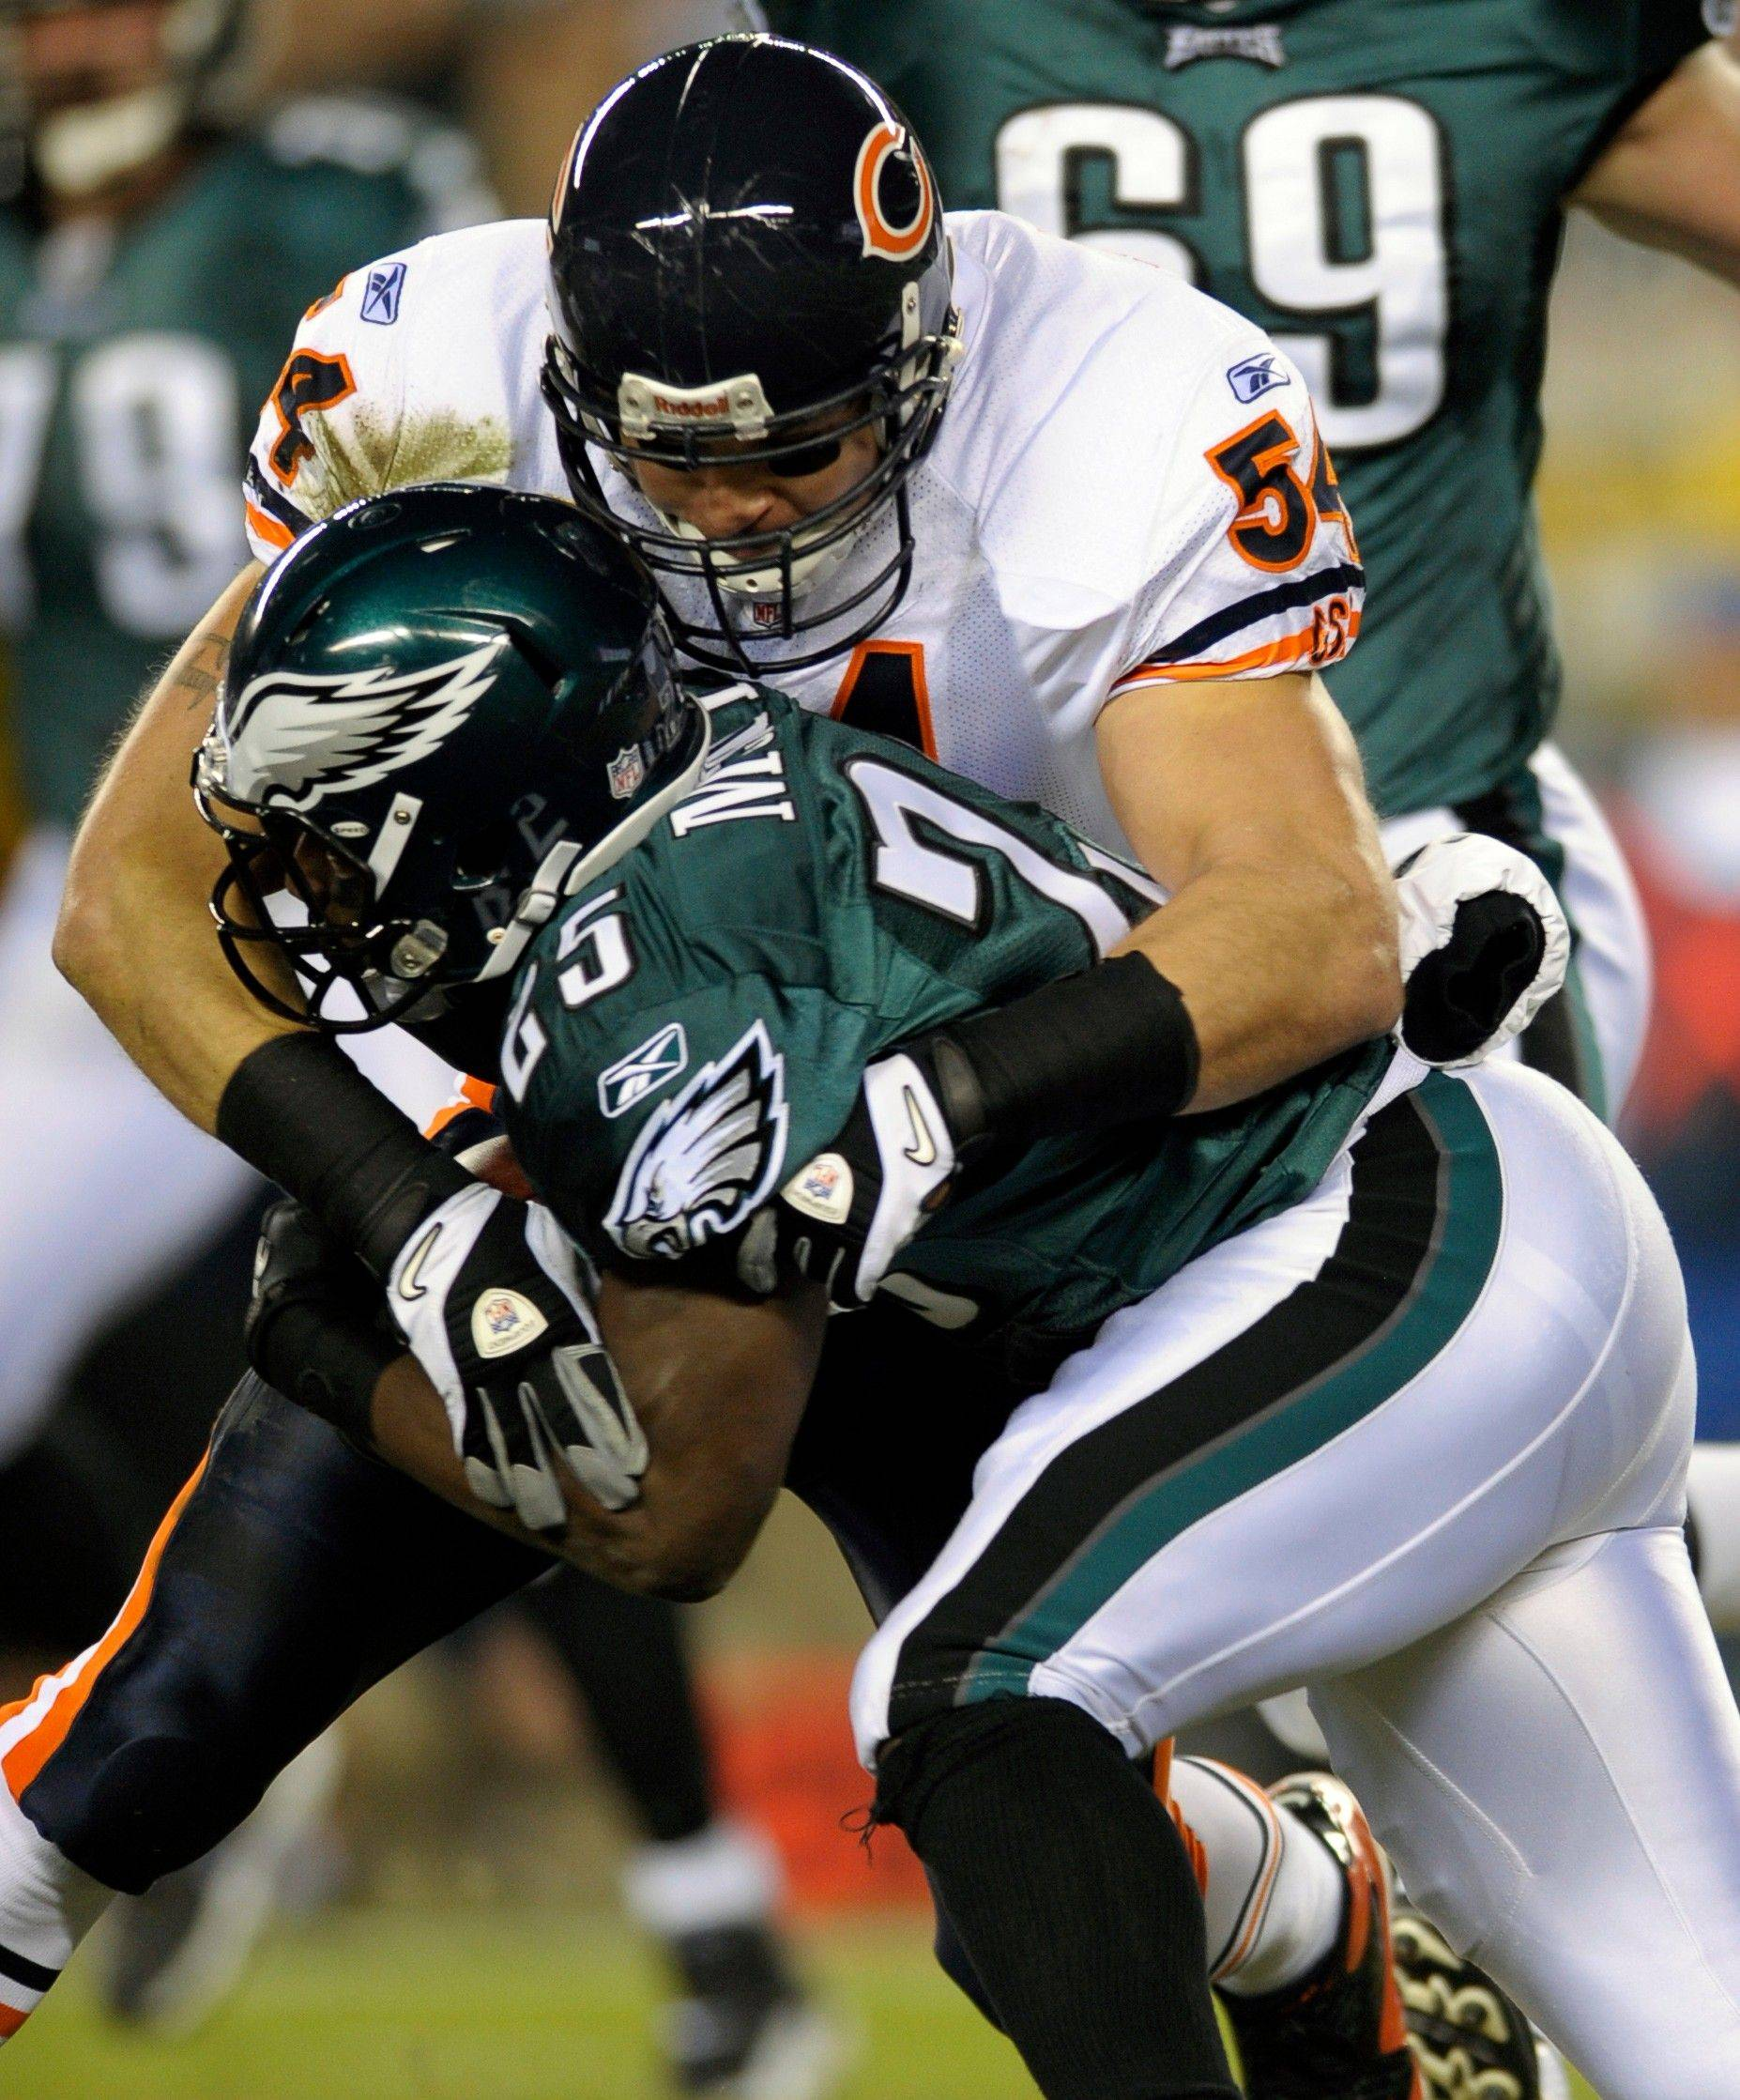 Bears linebacker Brian Urlacher makes things tough for Eagles running back LeSean McCoy during Monday's victory.